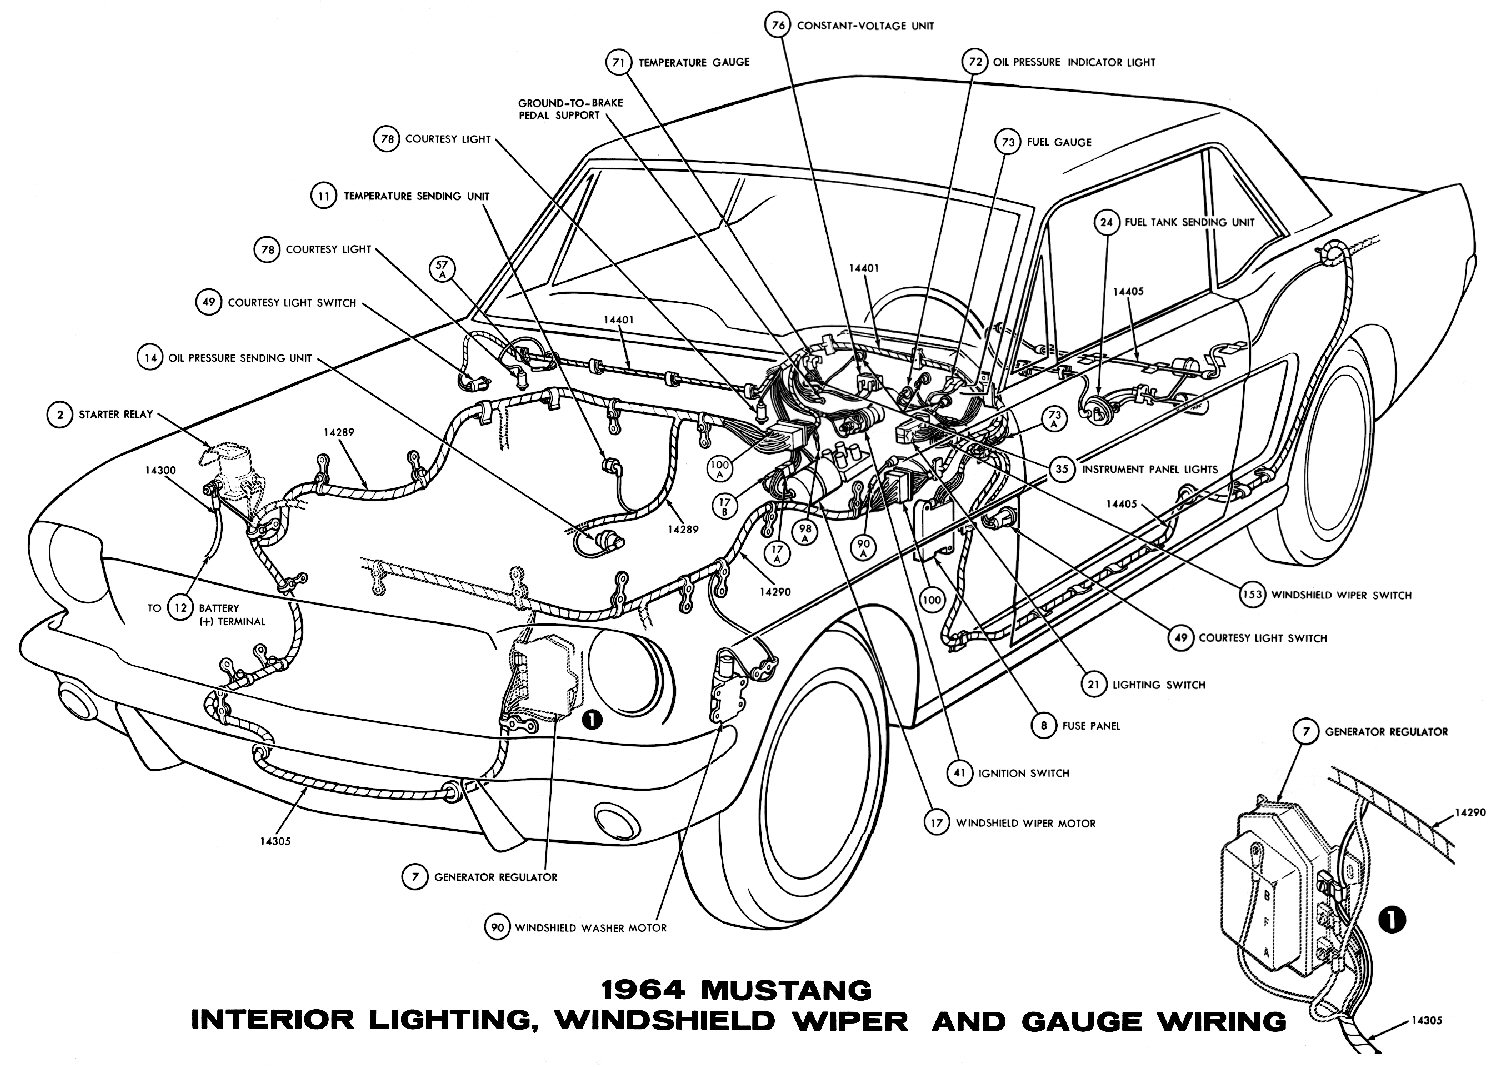 1964 mustang wiring diagrams